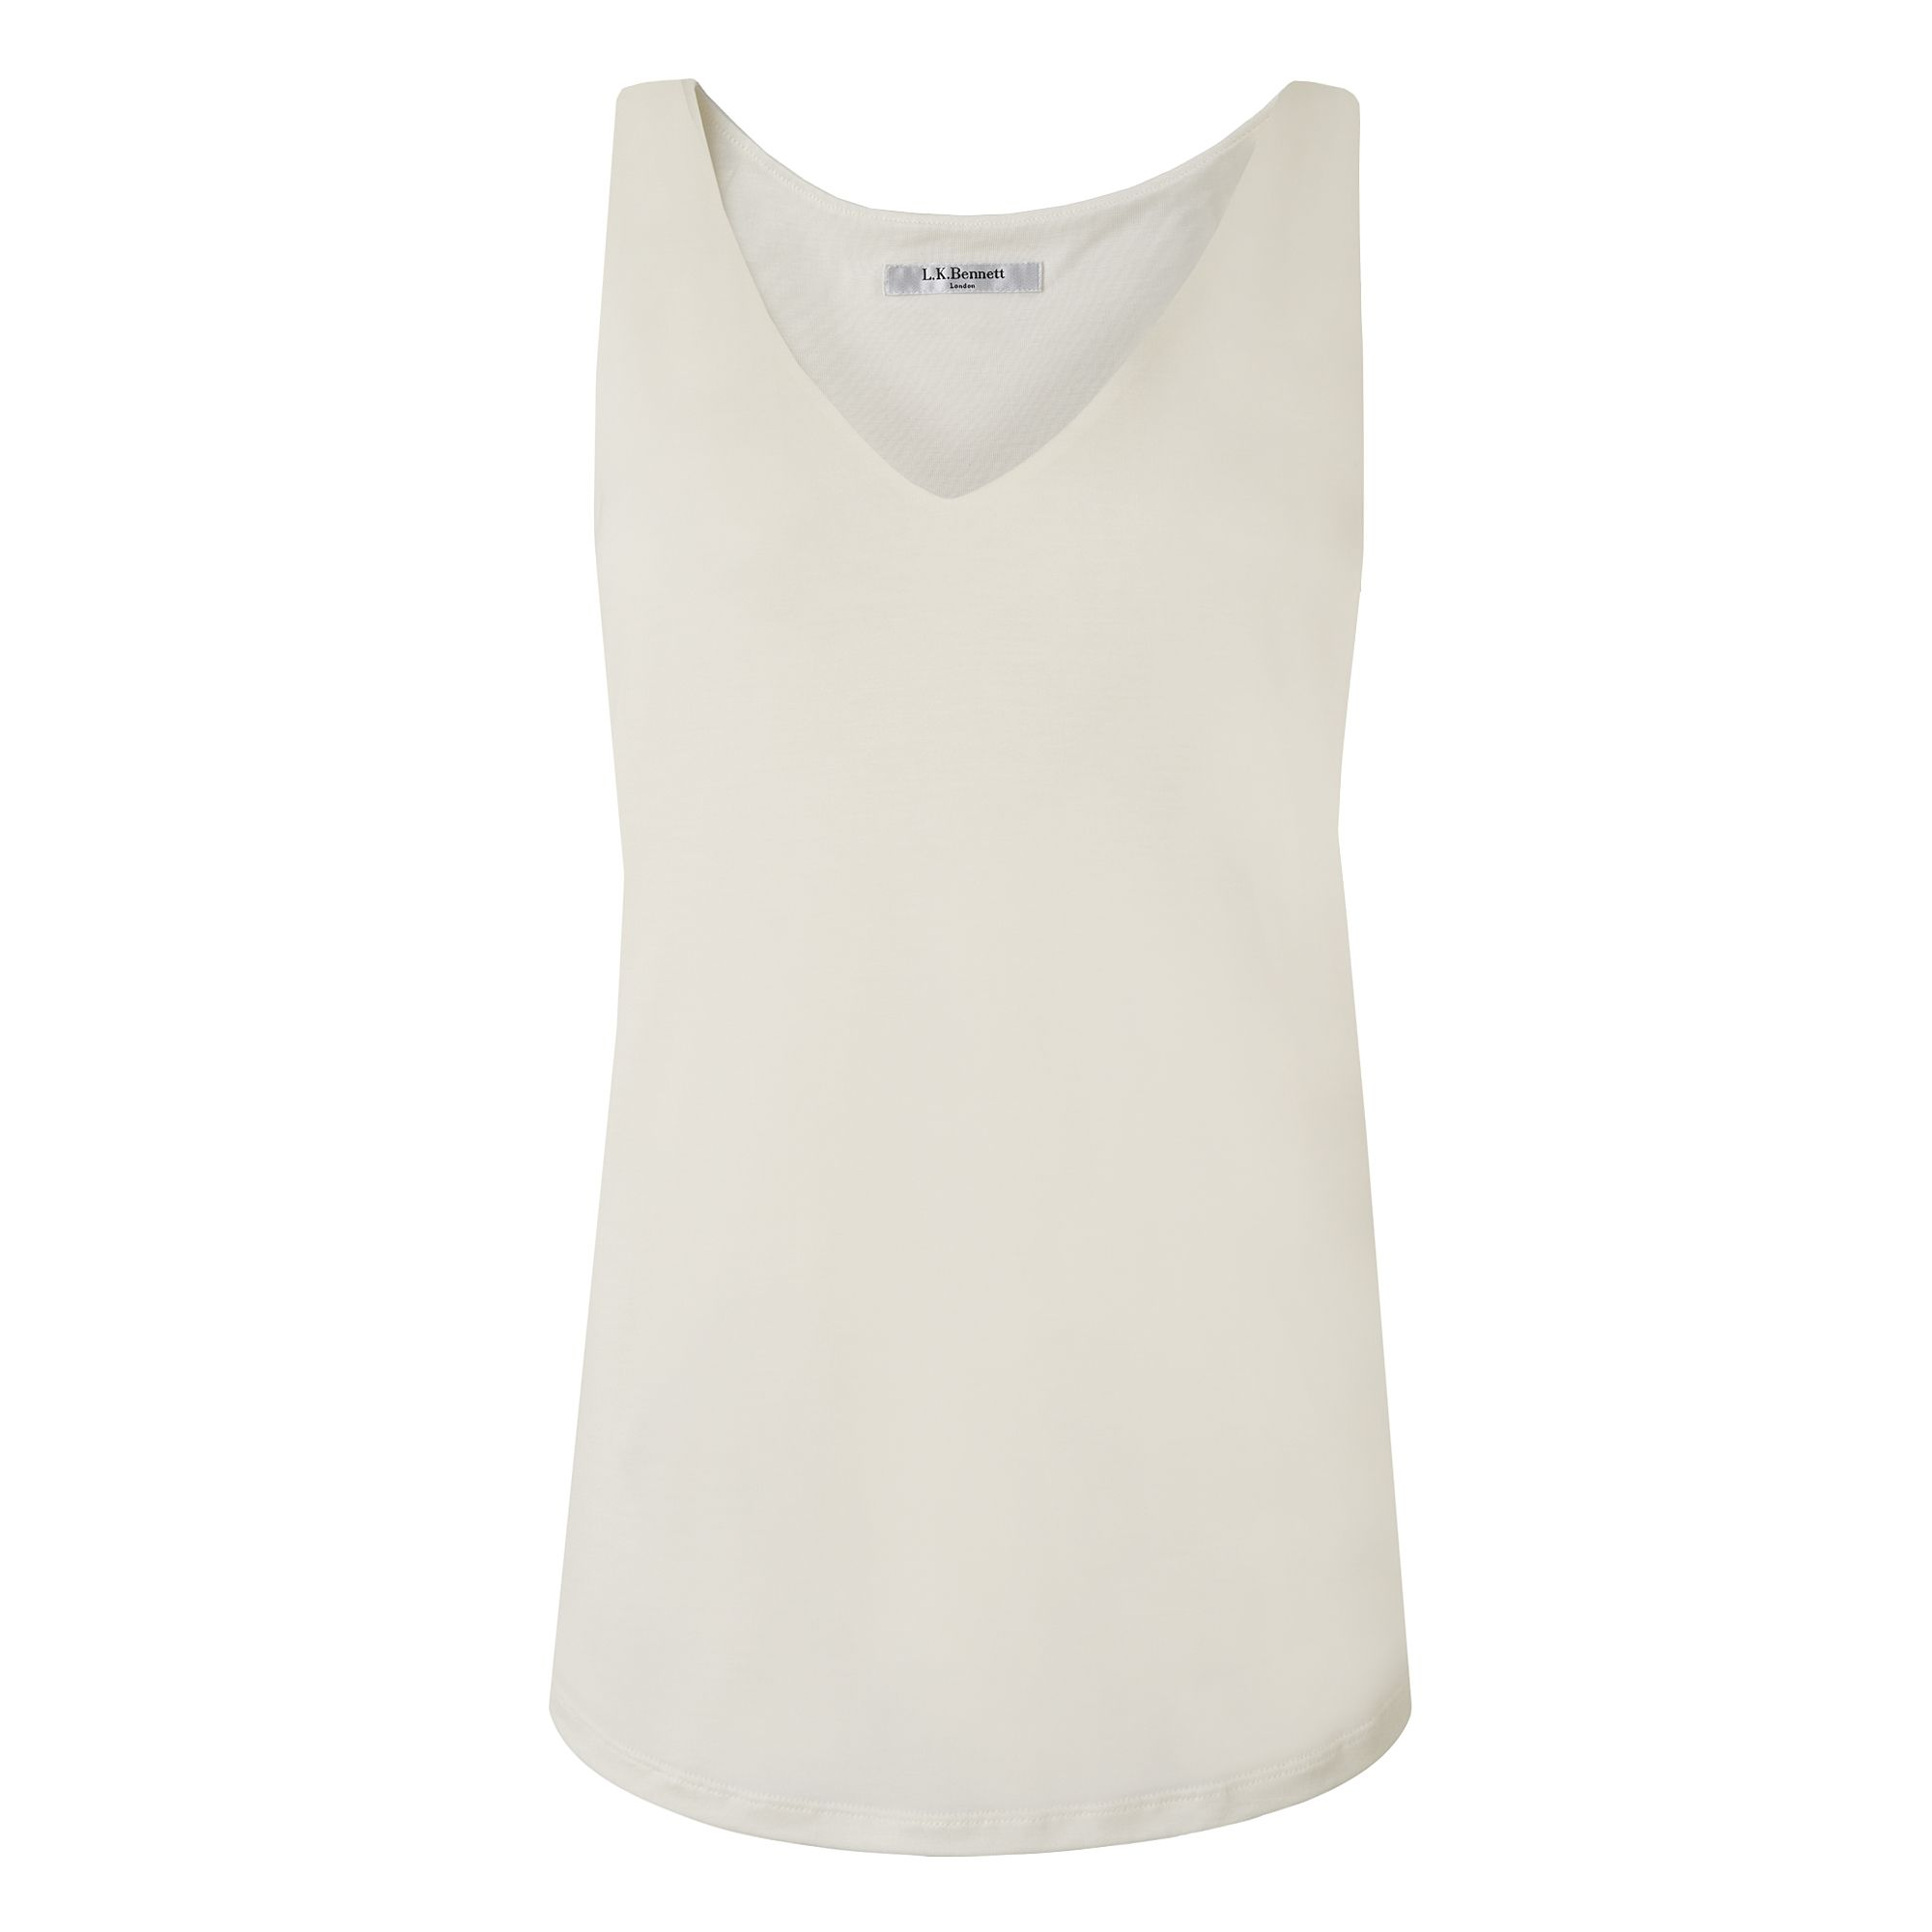 L.K. Bennett Ada Sleeveless V Neck Jersey Tops, Cream